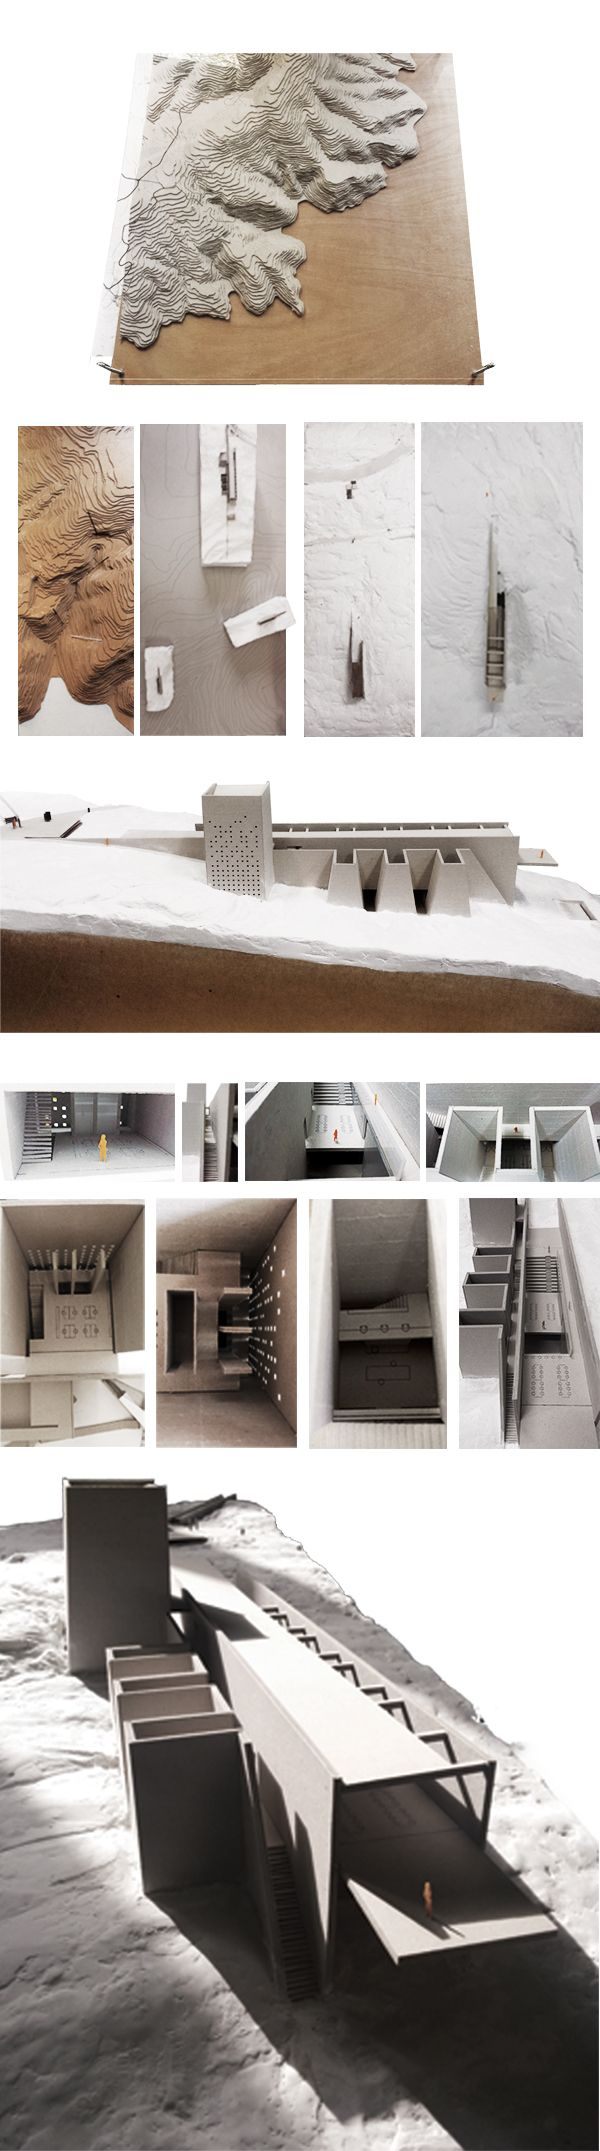 Best Architectural Models Images On Pinterest Architecture